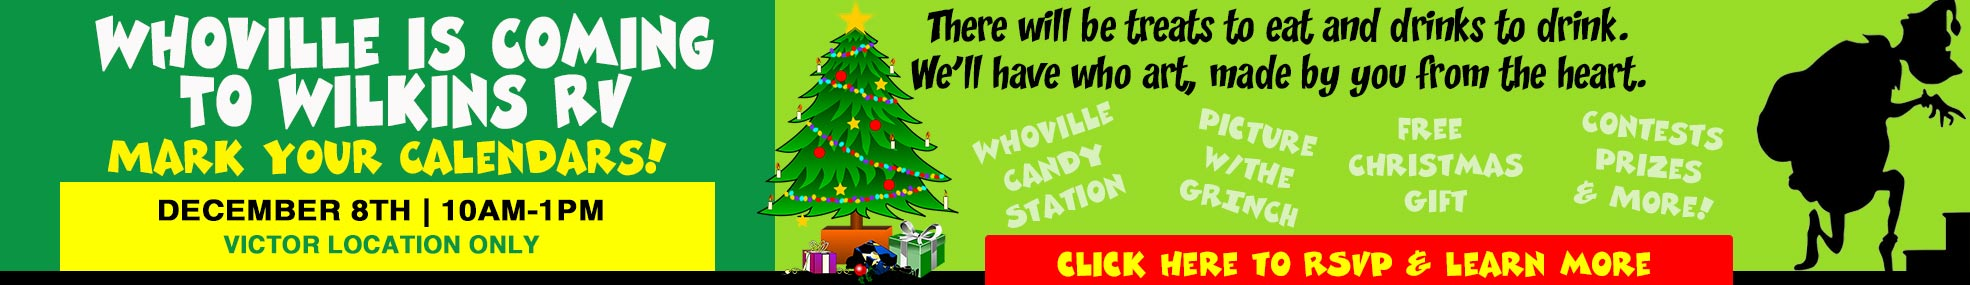 Wilkins RV Whoville Event December 8th 2019